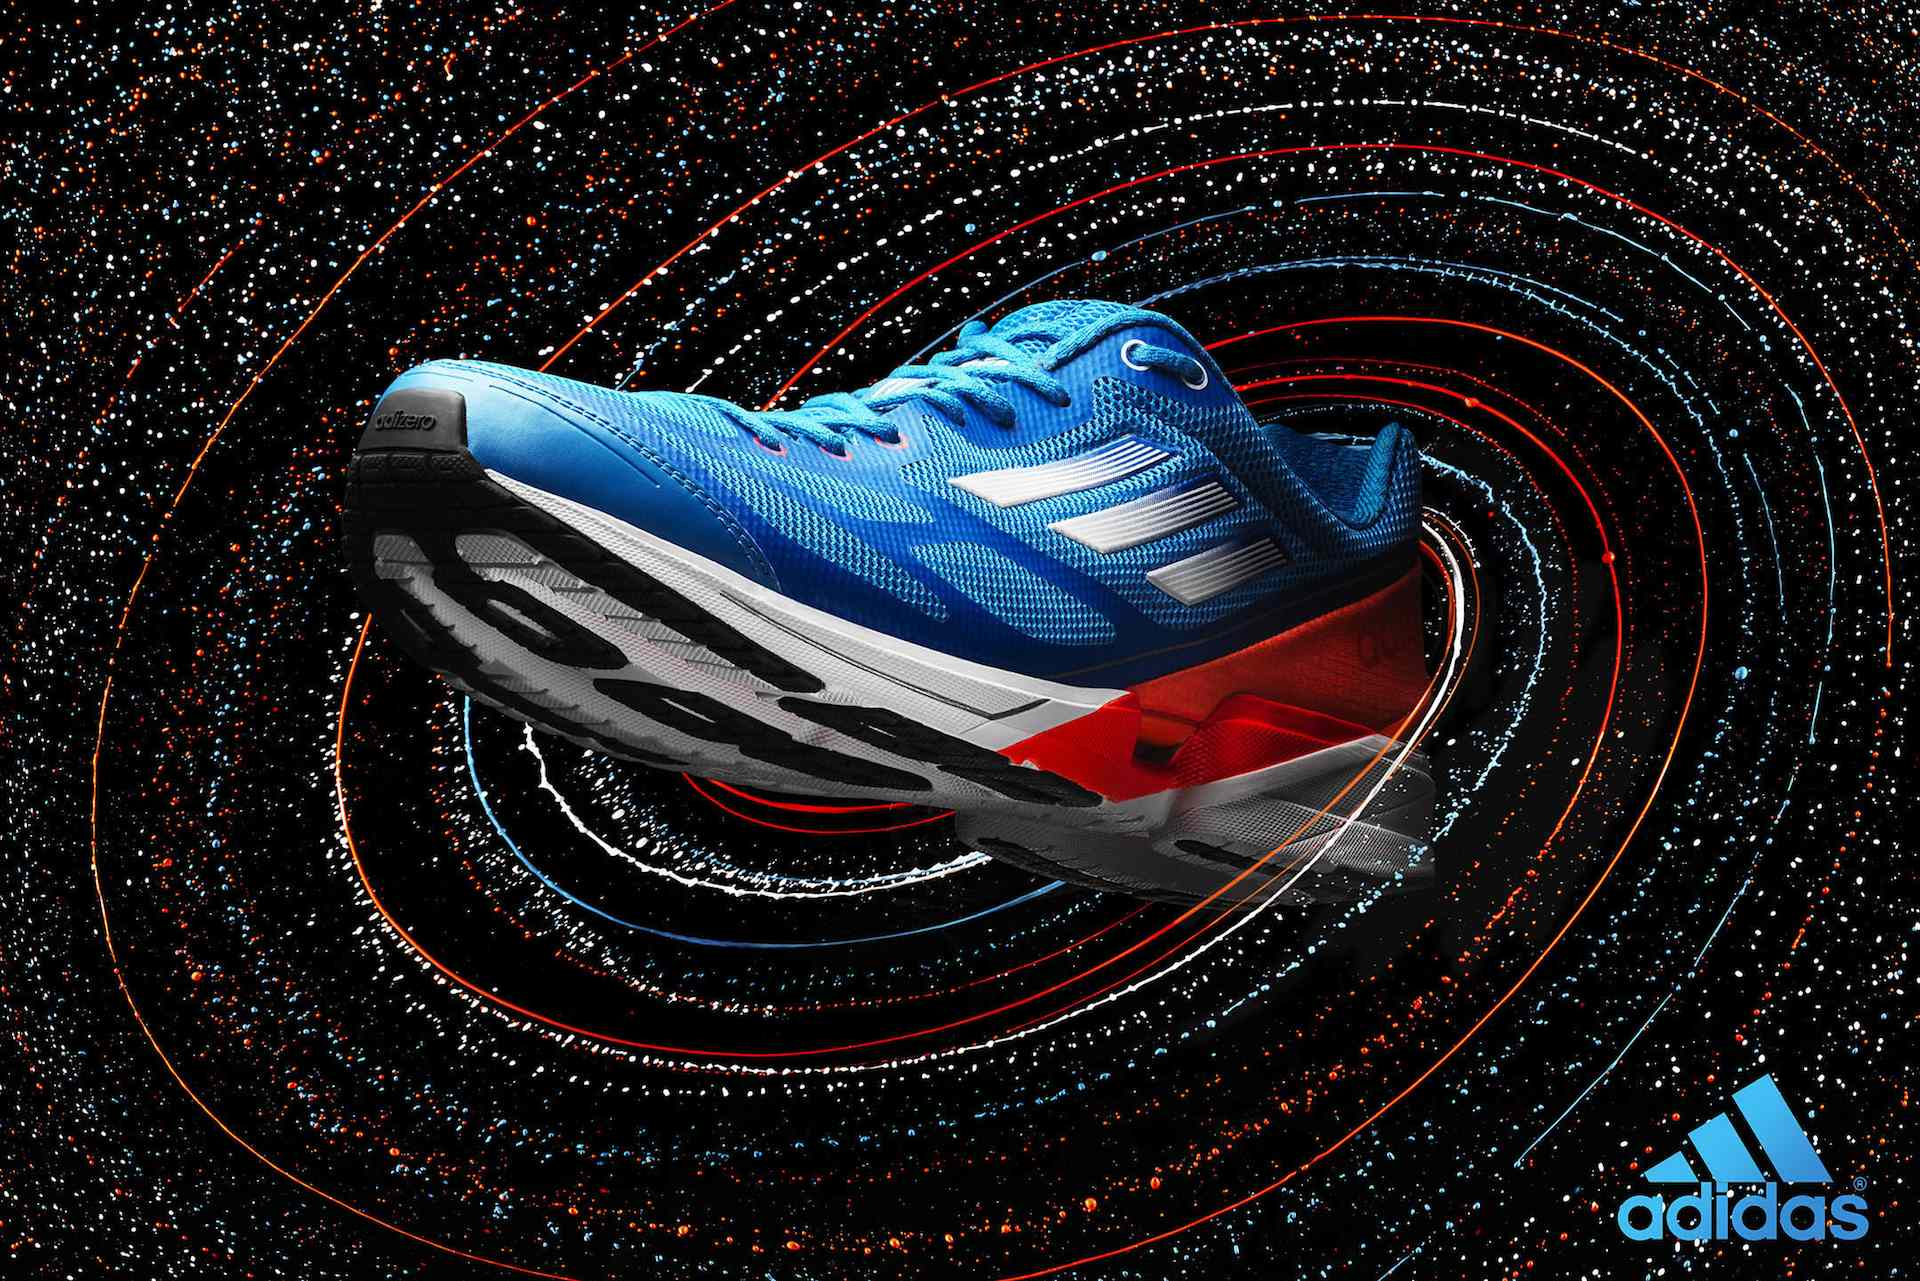 Tal_Adidas_Paint_Spin